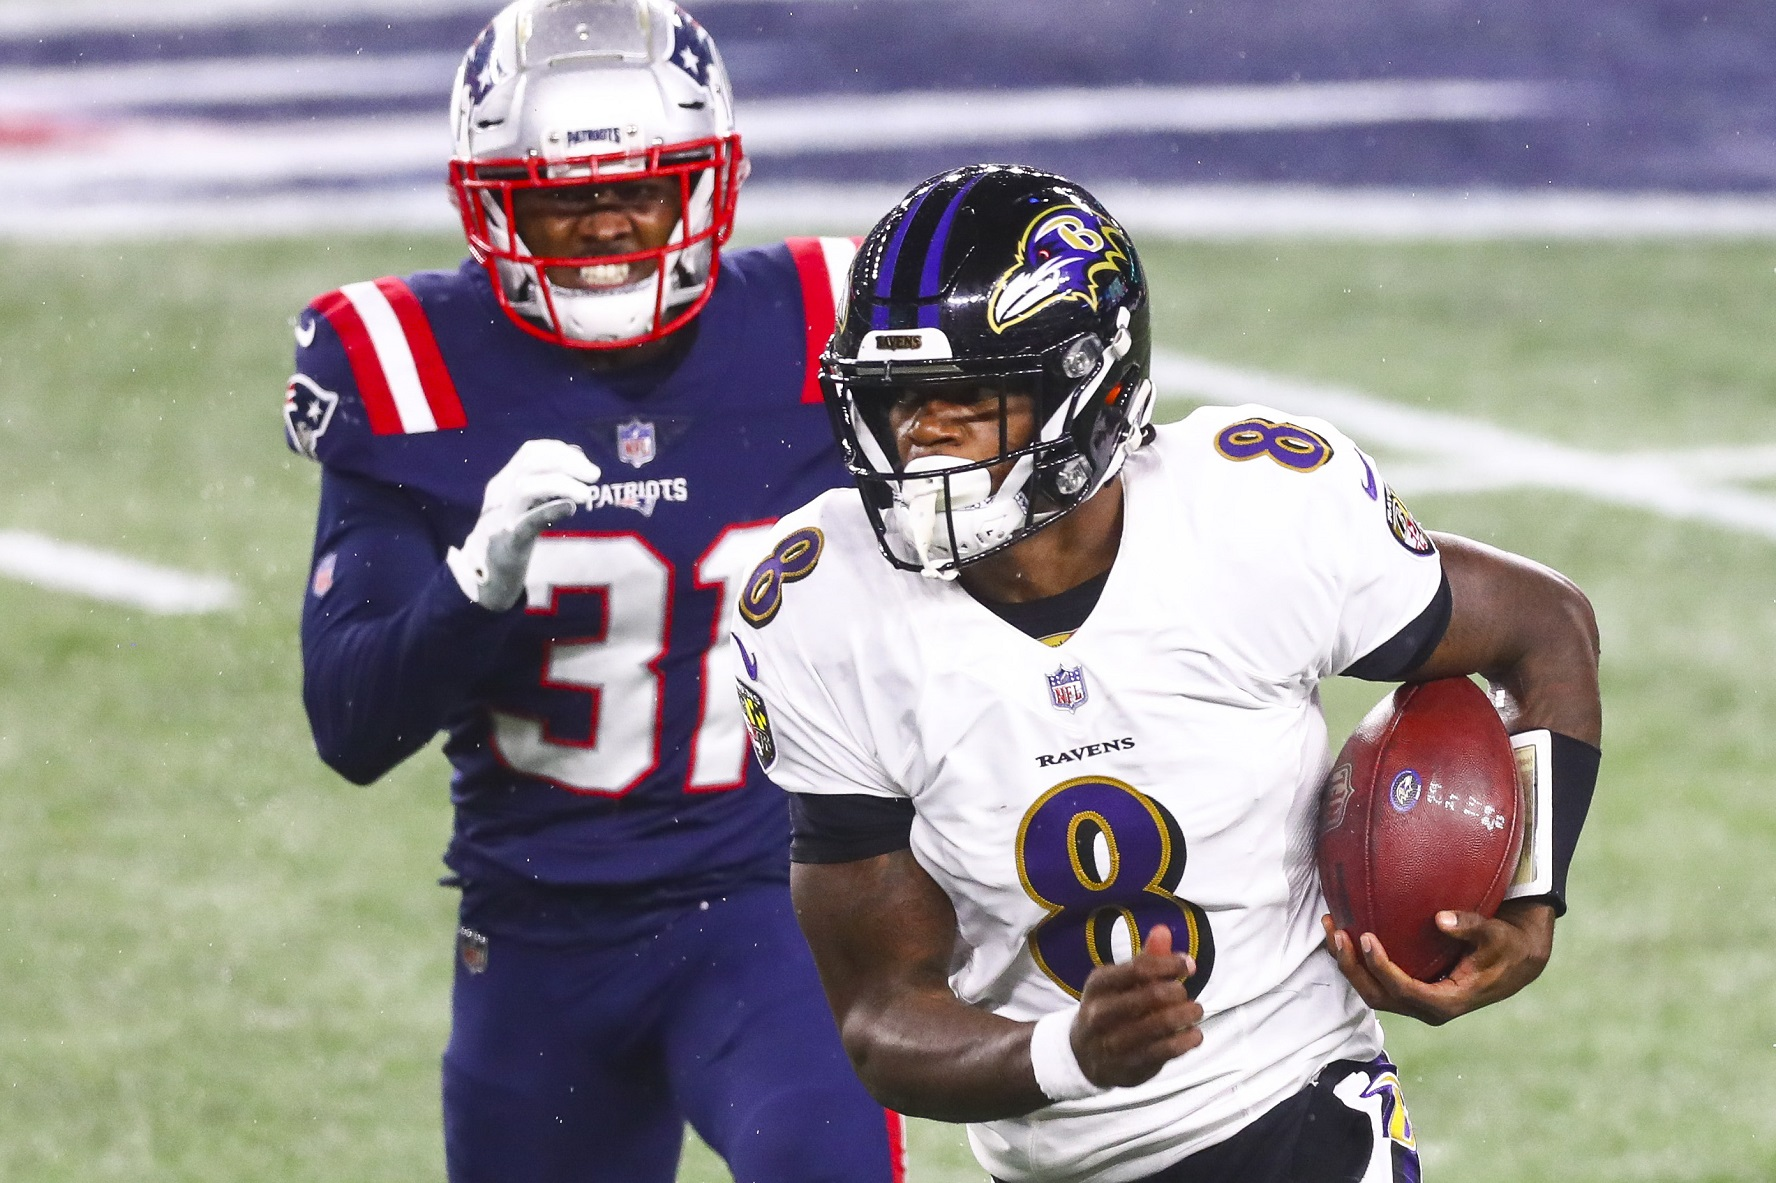 NBC Lost a Fortune on the Postponed Ravens-Steelers Game